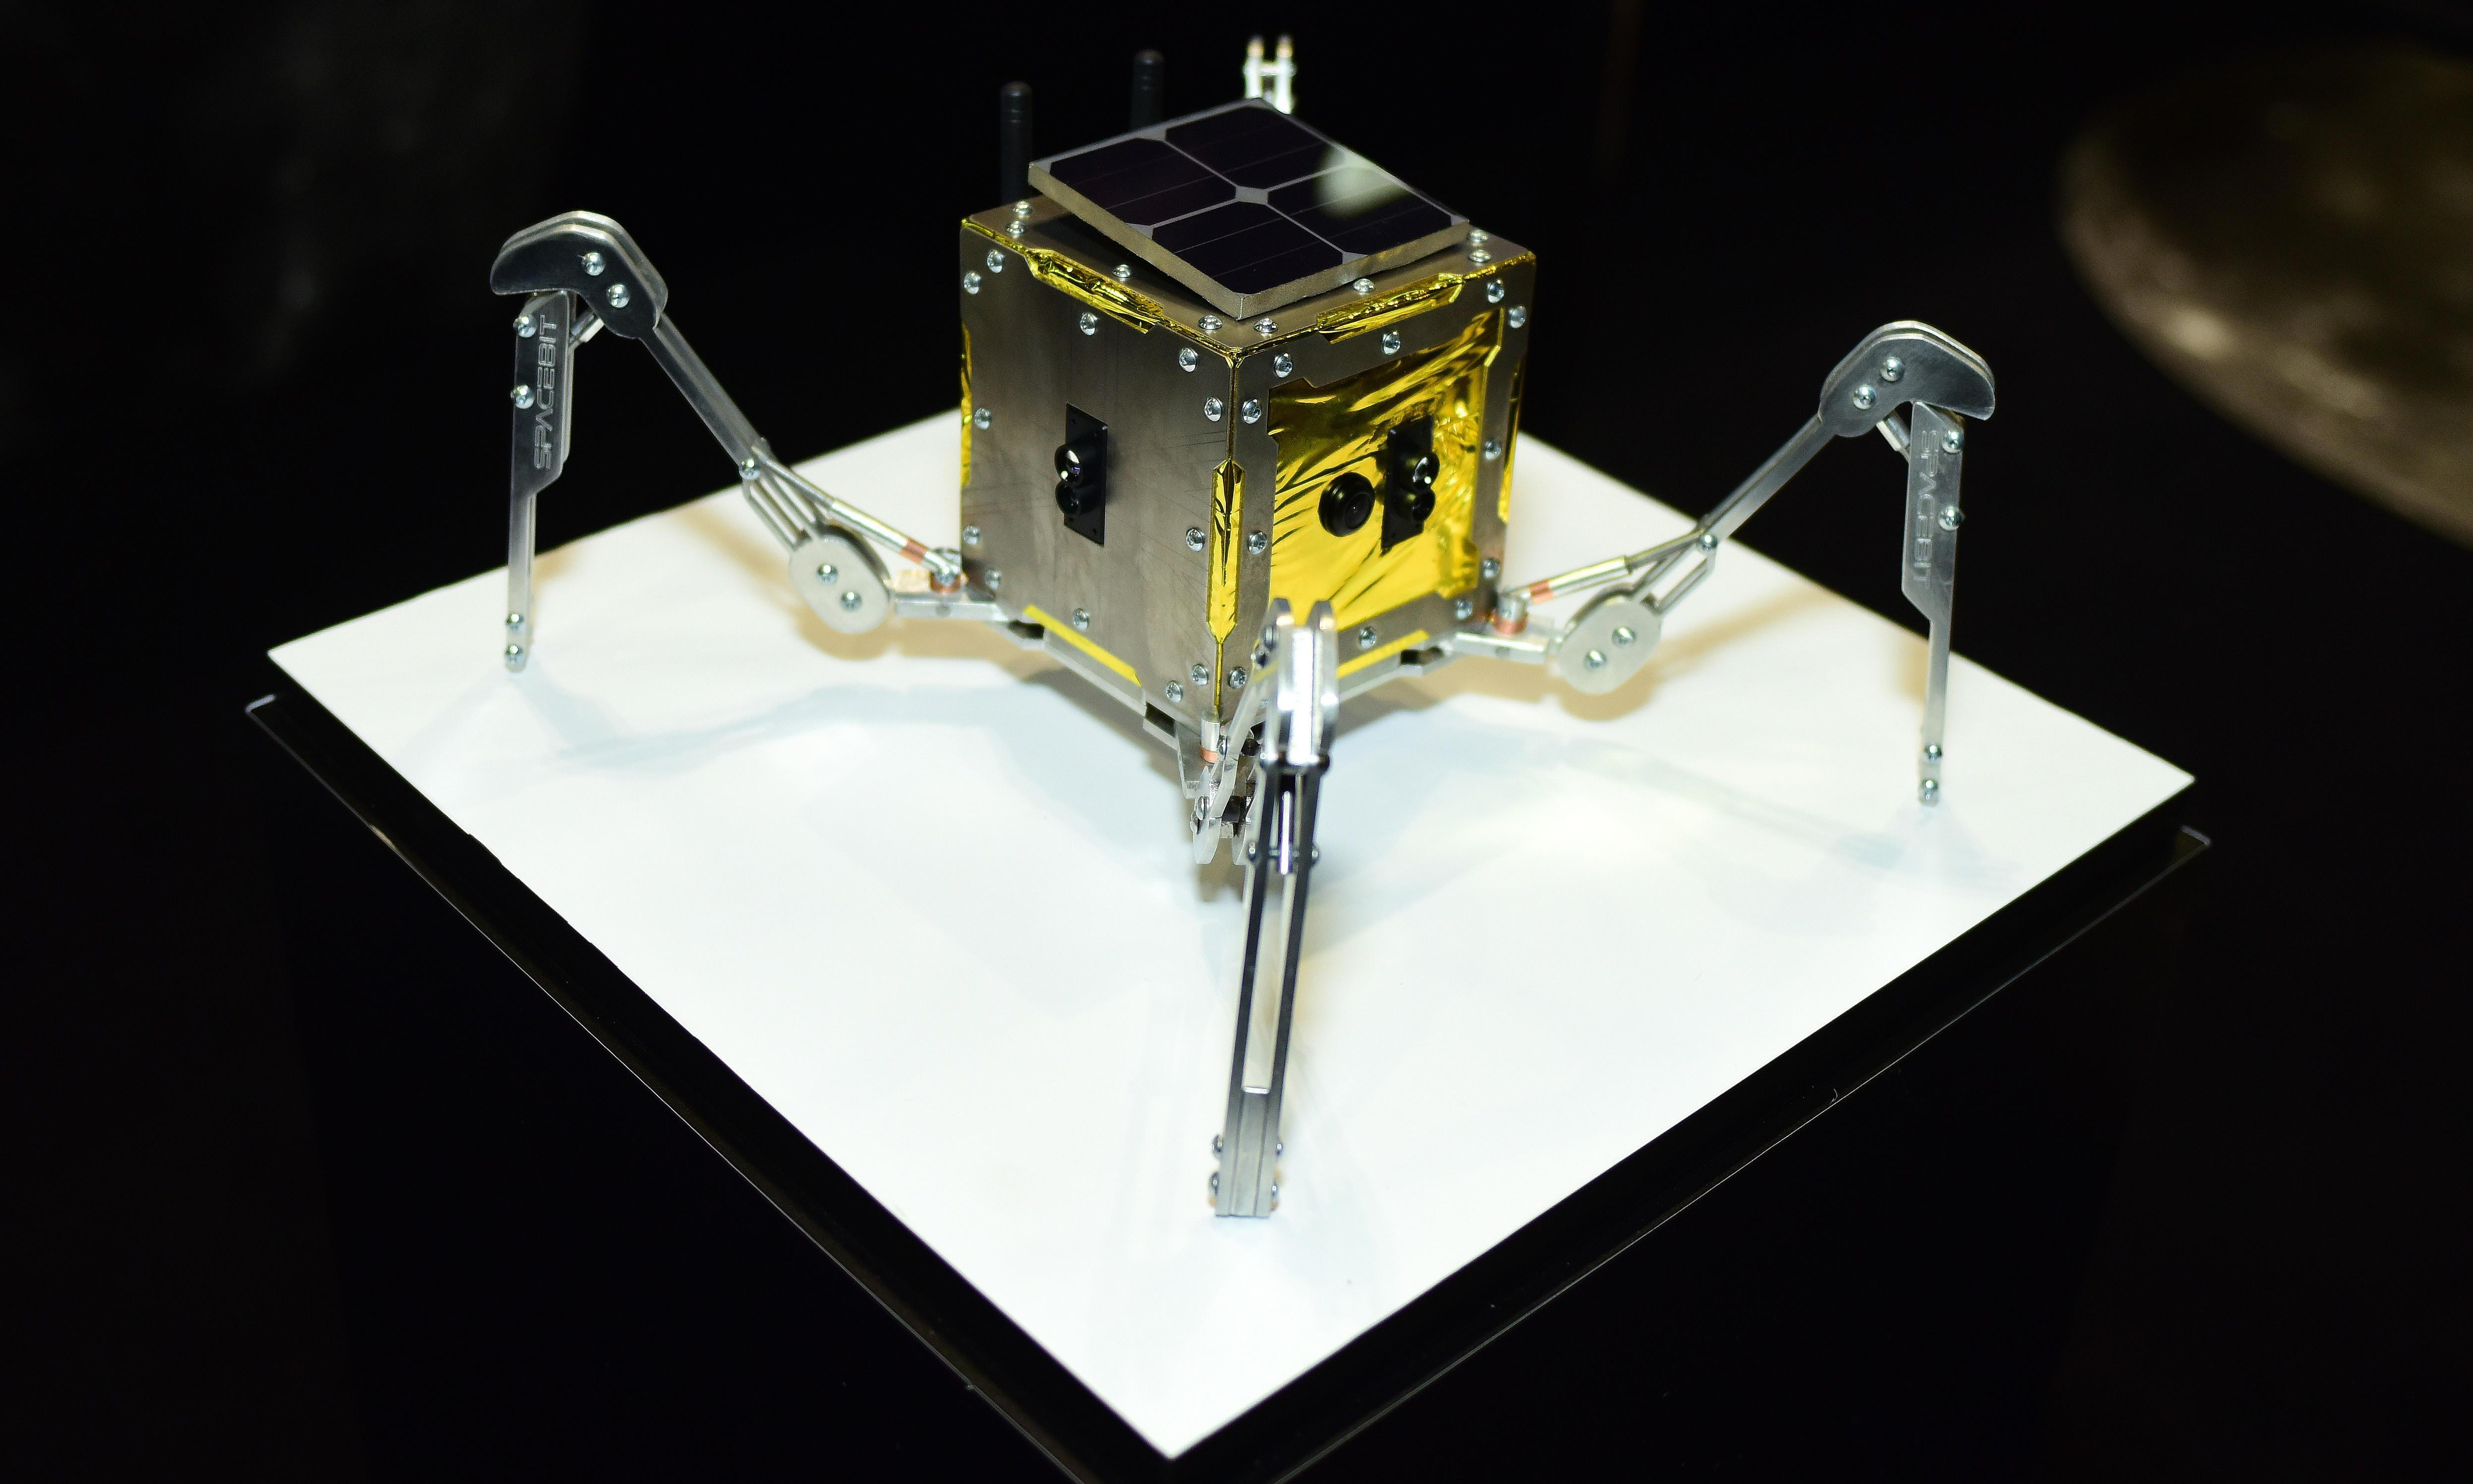 Spacewatch: UK's first moon rover poised for 2021 touchdown